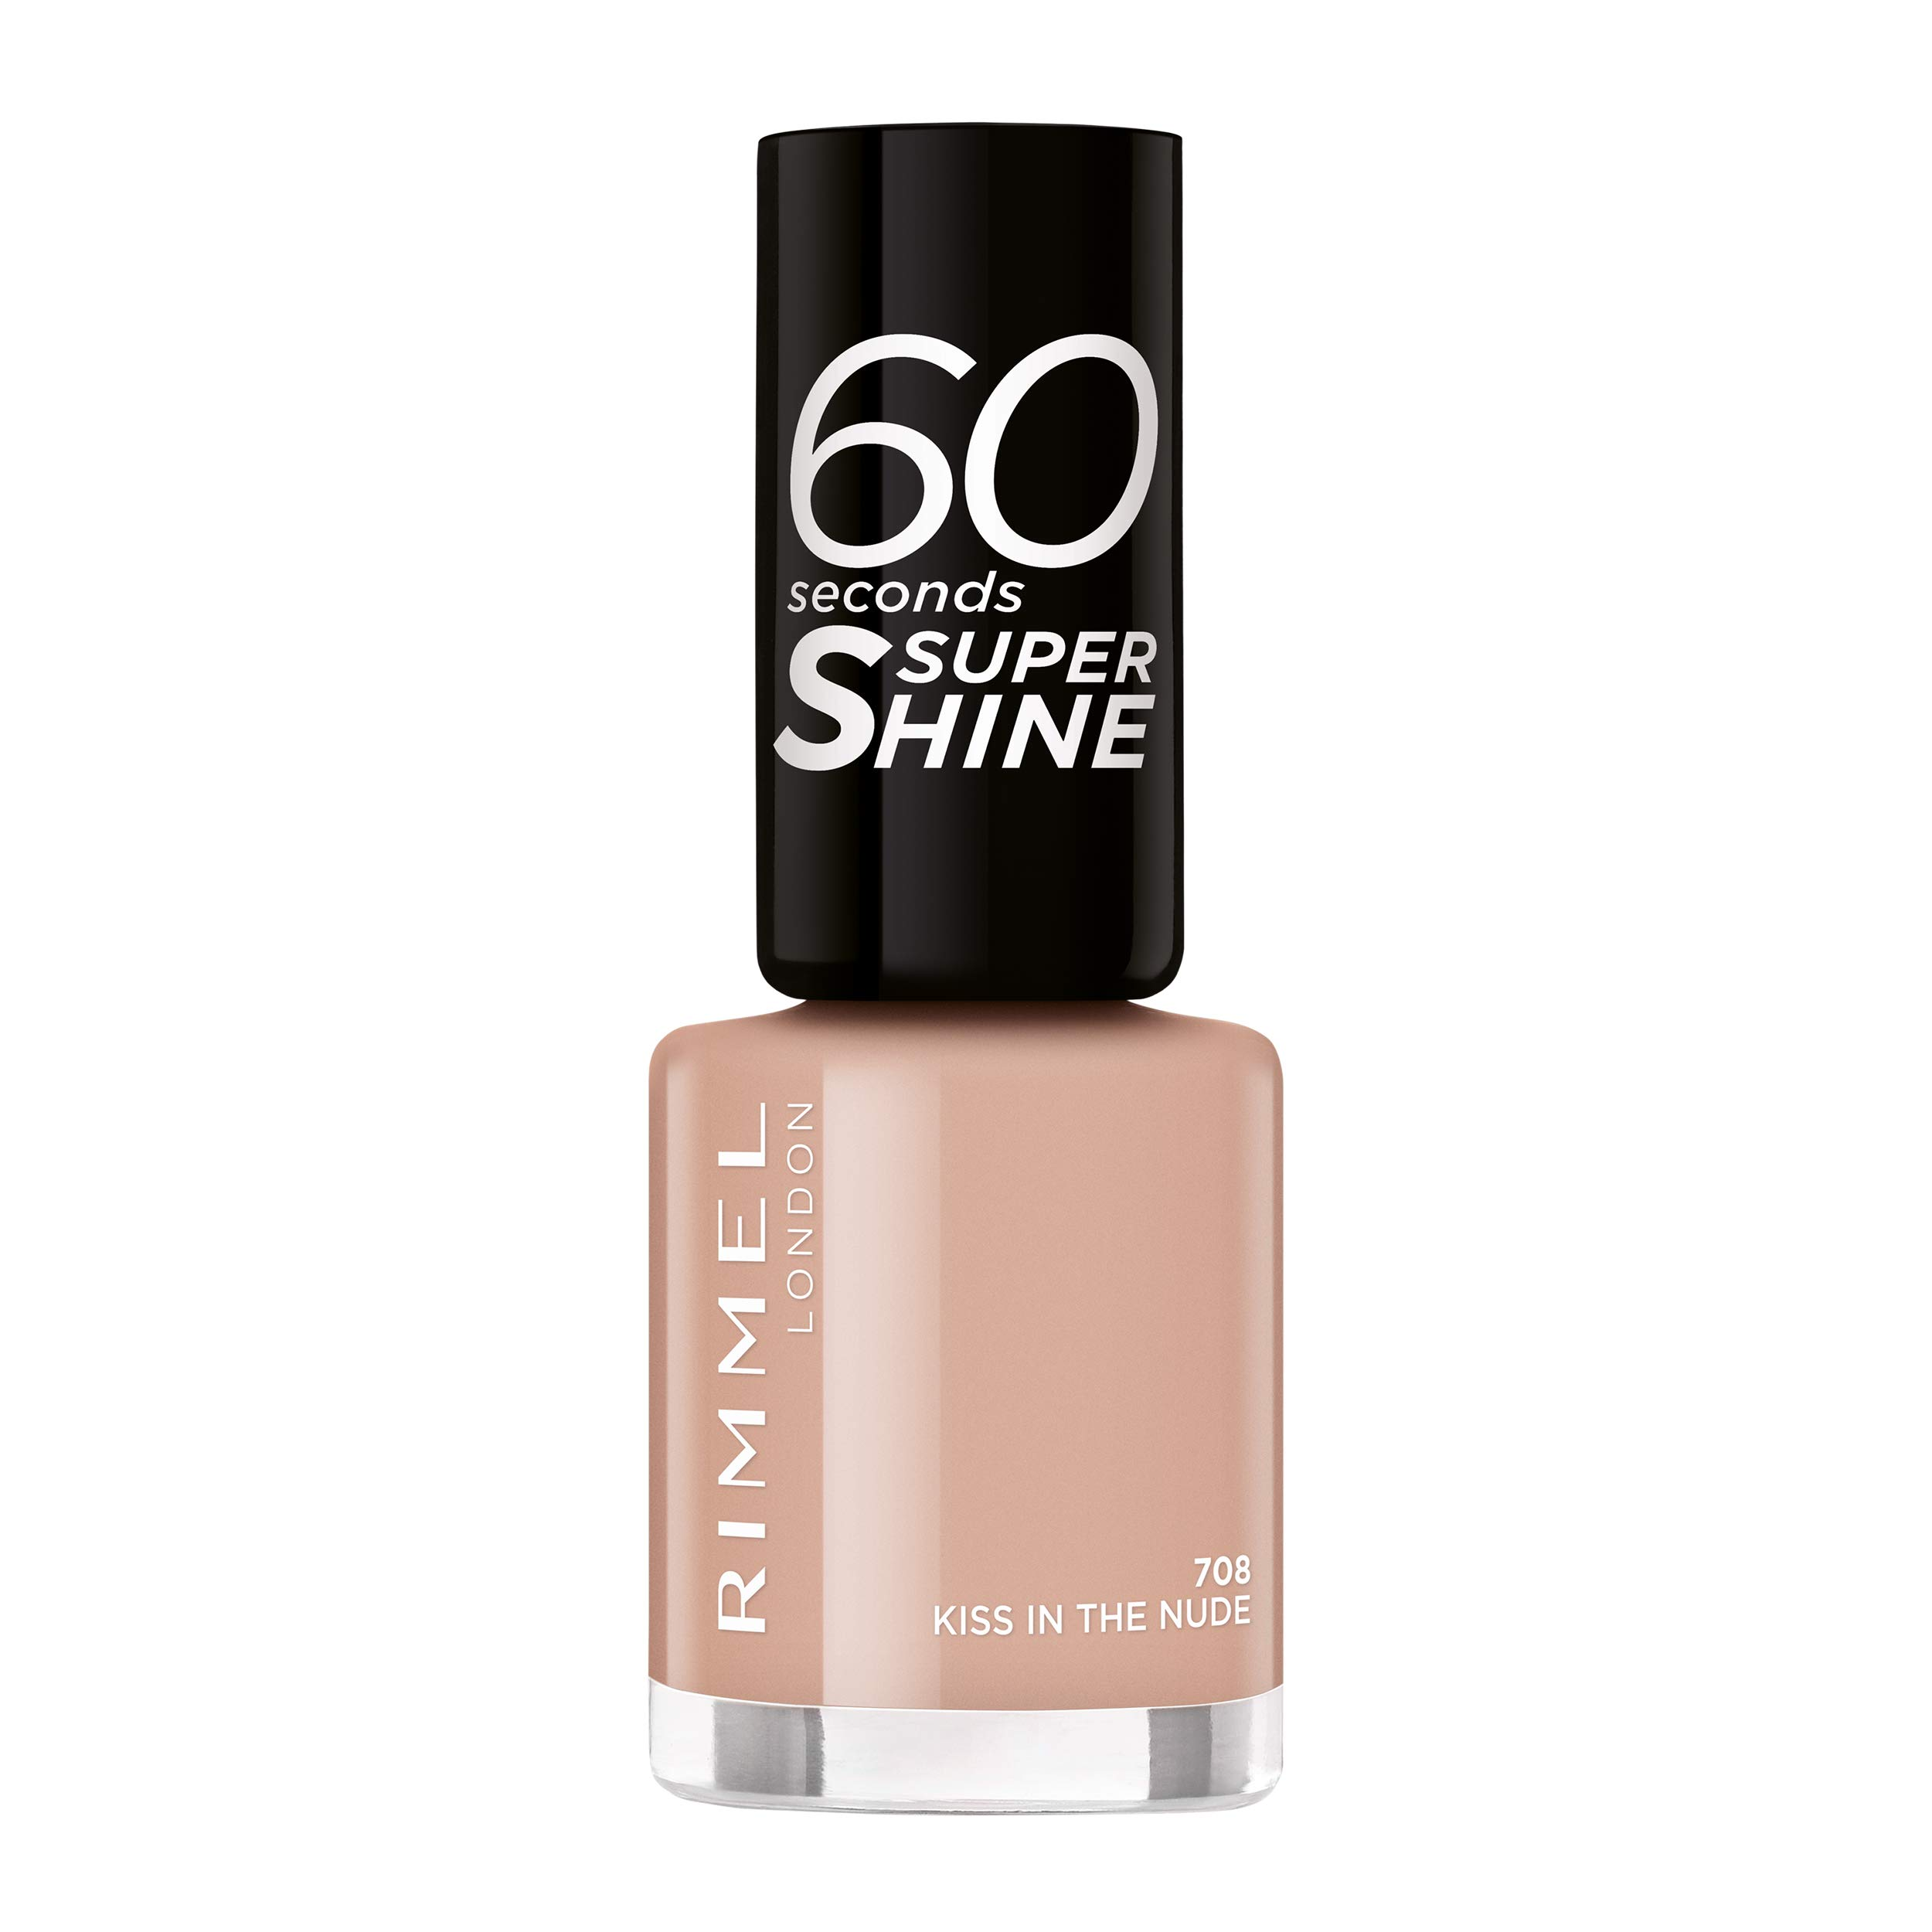 Rimmel London 60 Seconds Super Shine #708-Kiss in The Nude – 1 unidad